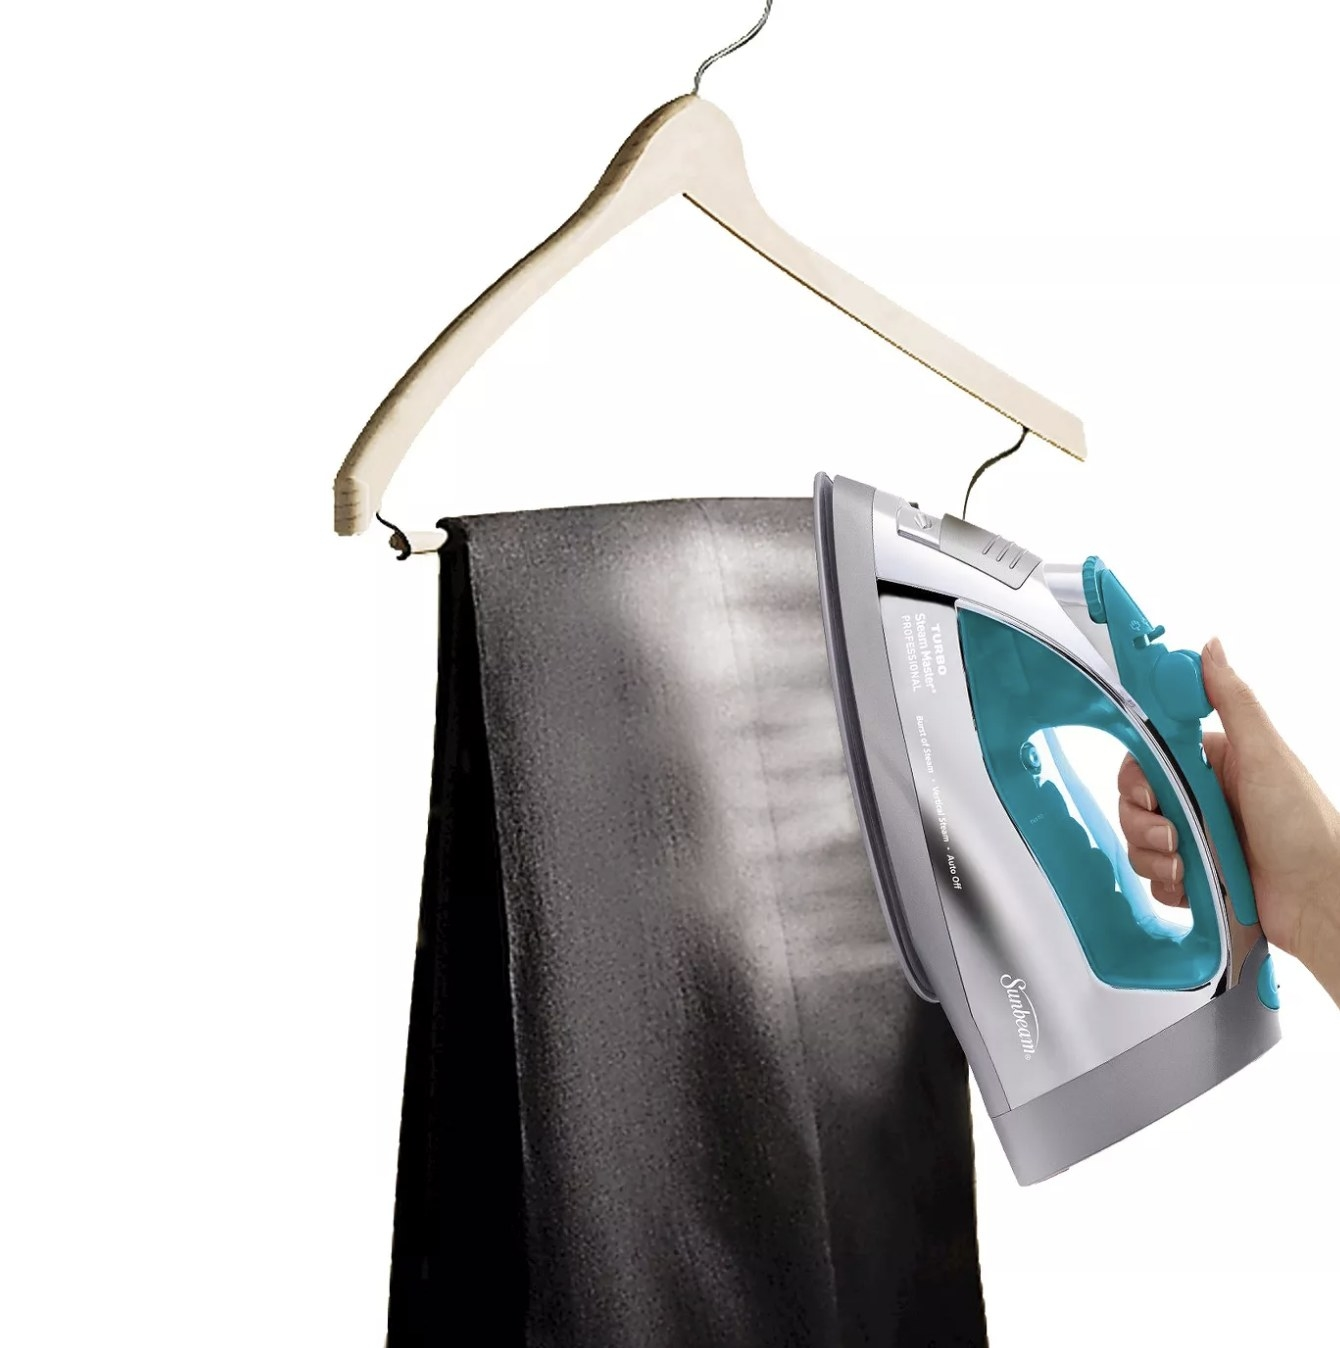 A person is steaming a pair of black pants with an iron